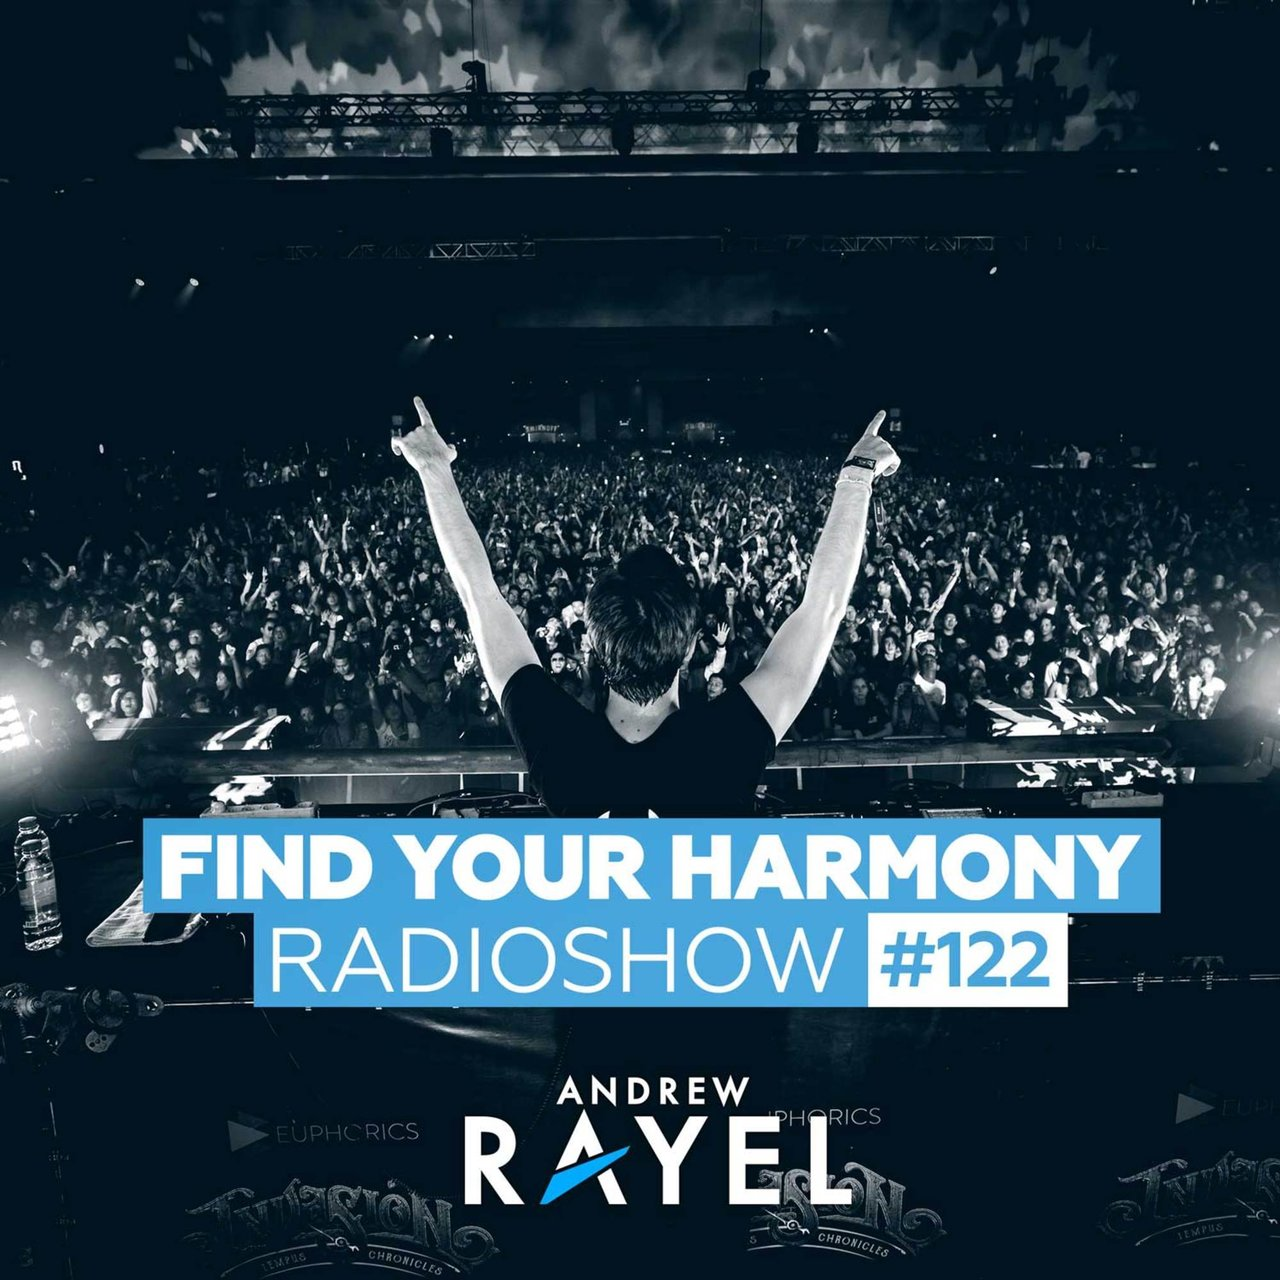 Find Your Harmony Radioshow #122